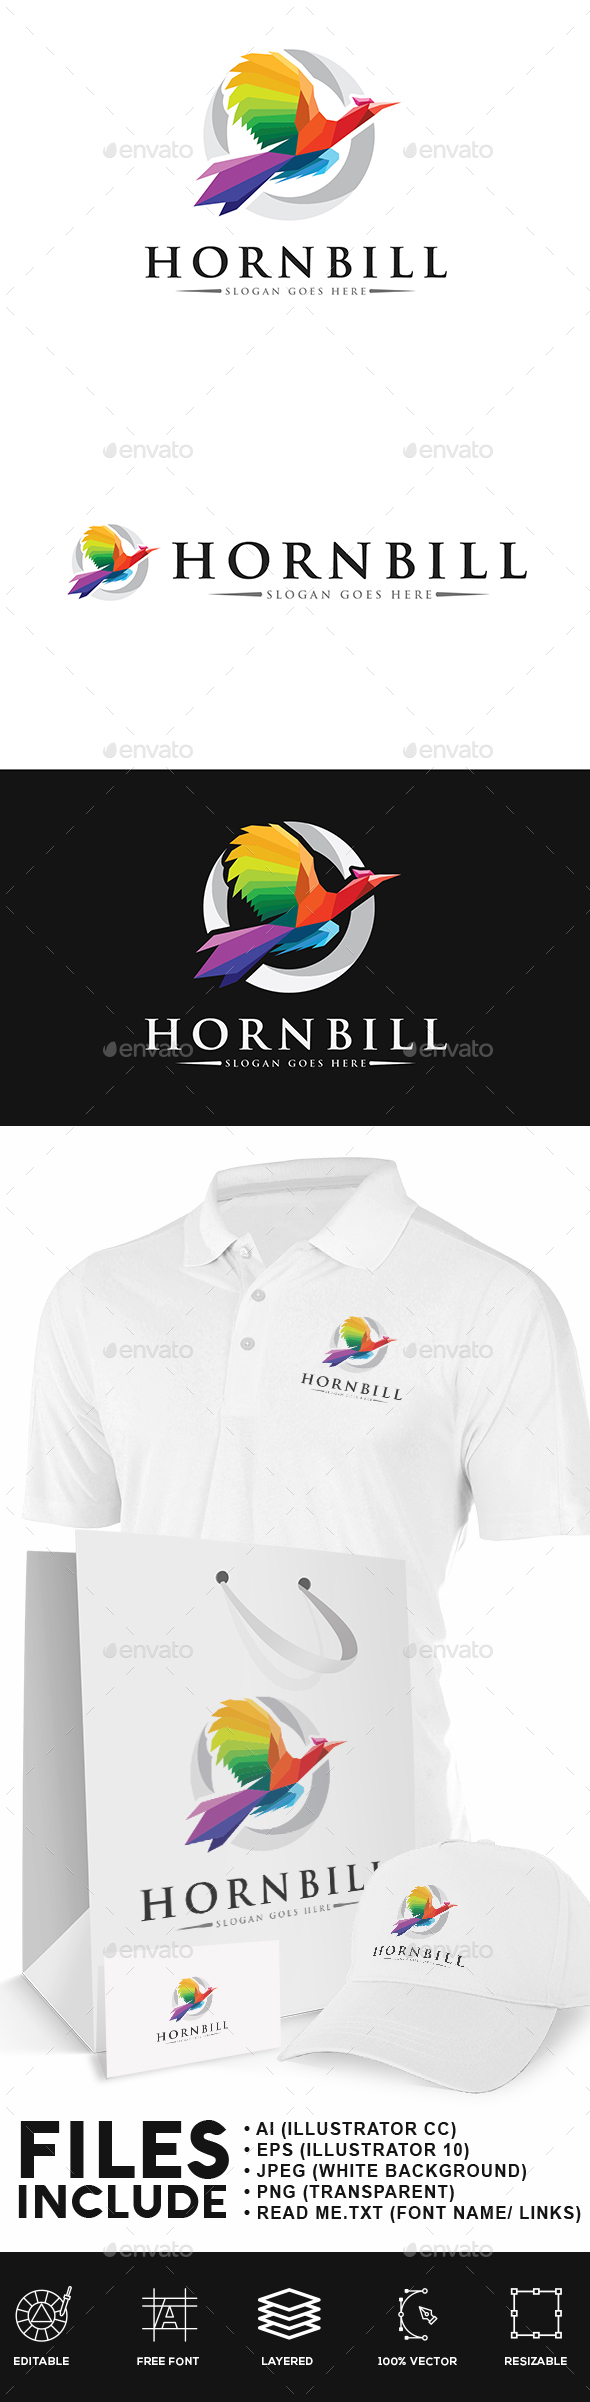 Hornbill Bird Logo - Animals Logo Templates